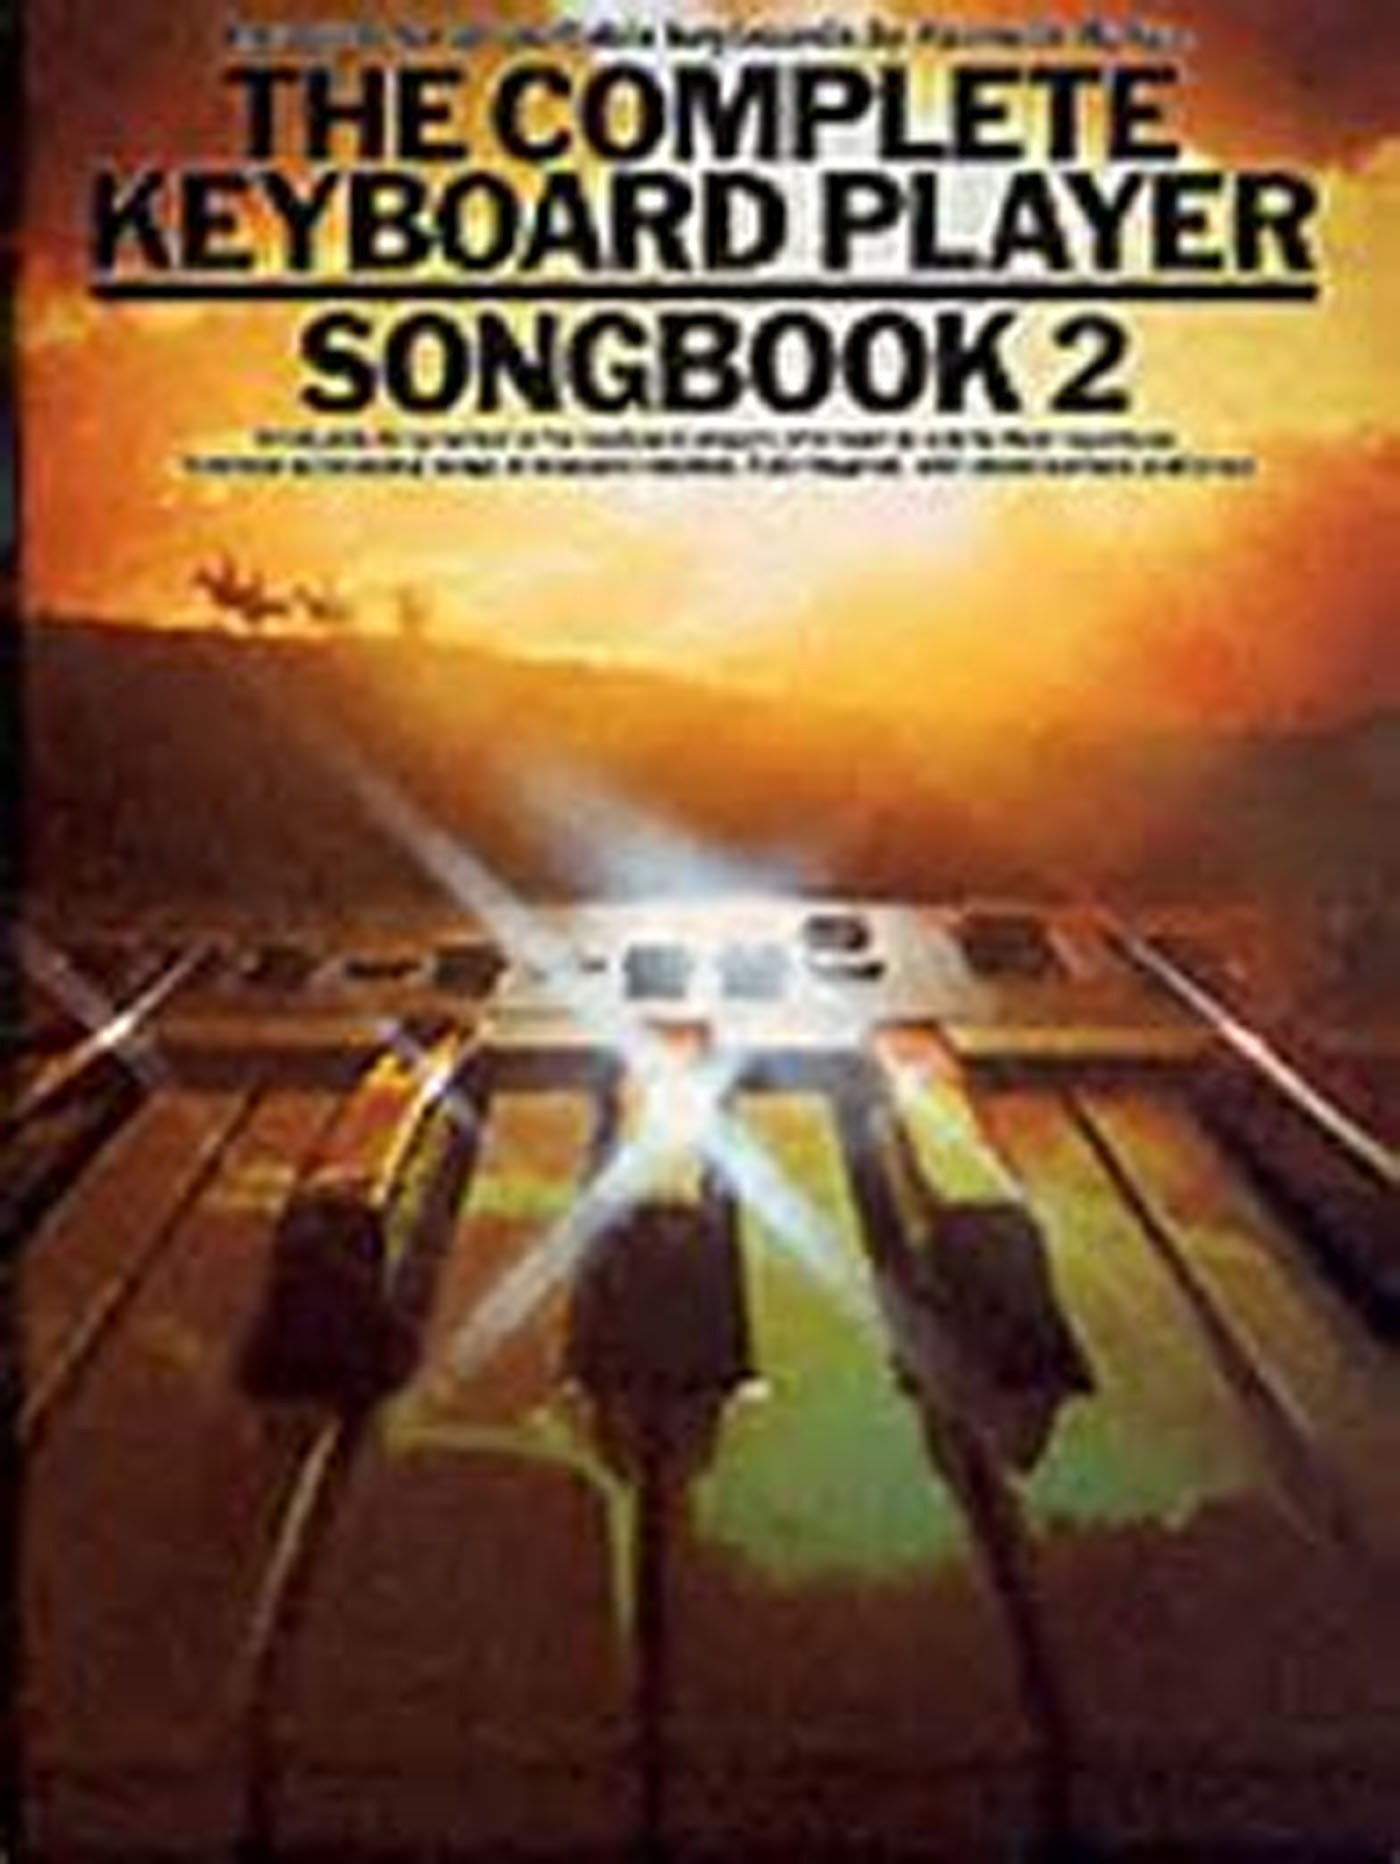 The Complete Keyboard Player Songbook 2 Kenneth Baker S16